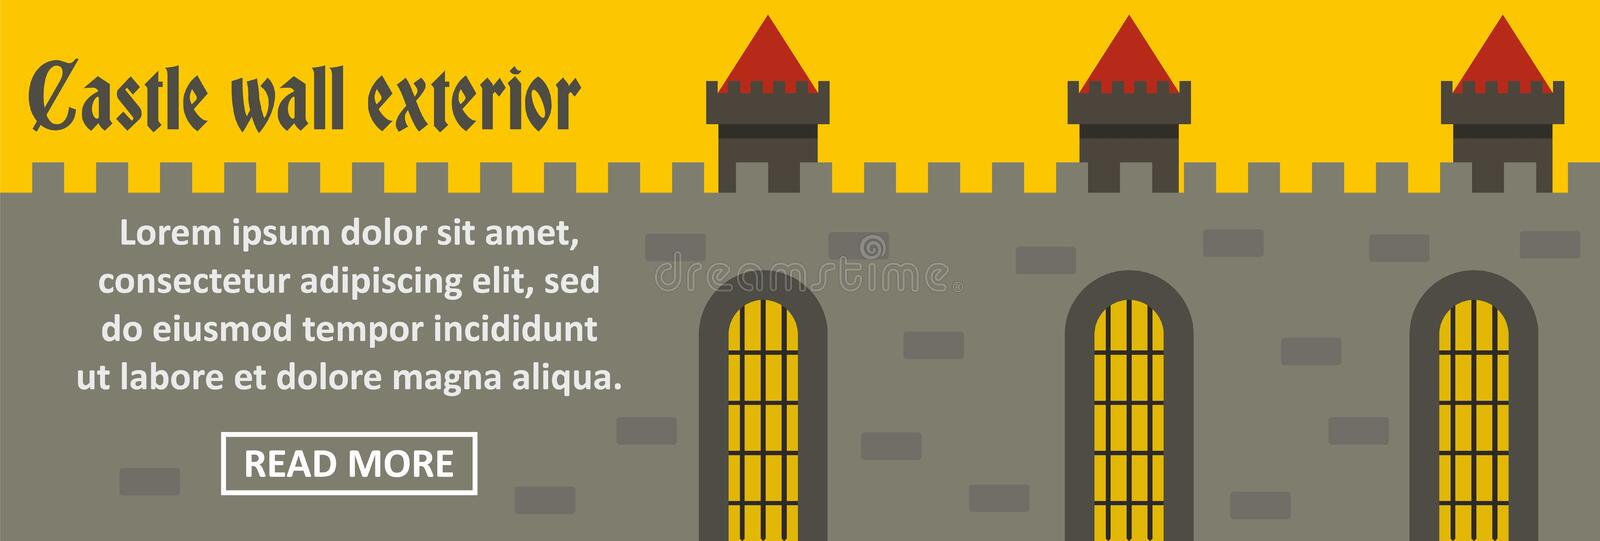 Castle wall exterior banner horizontal concept royalty free illustration